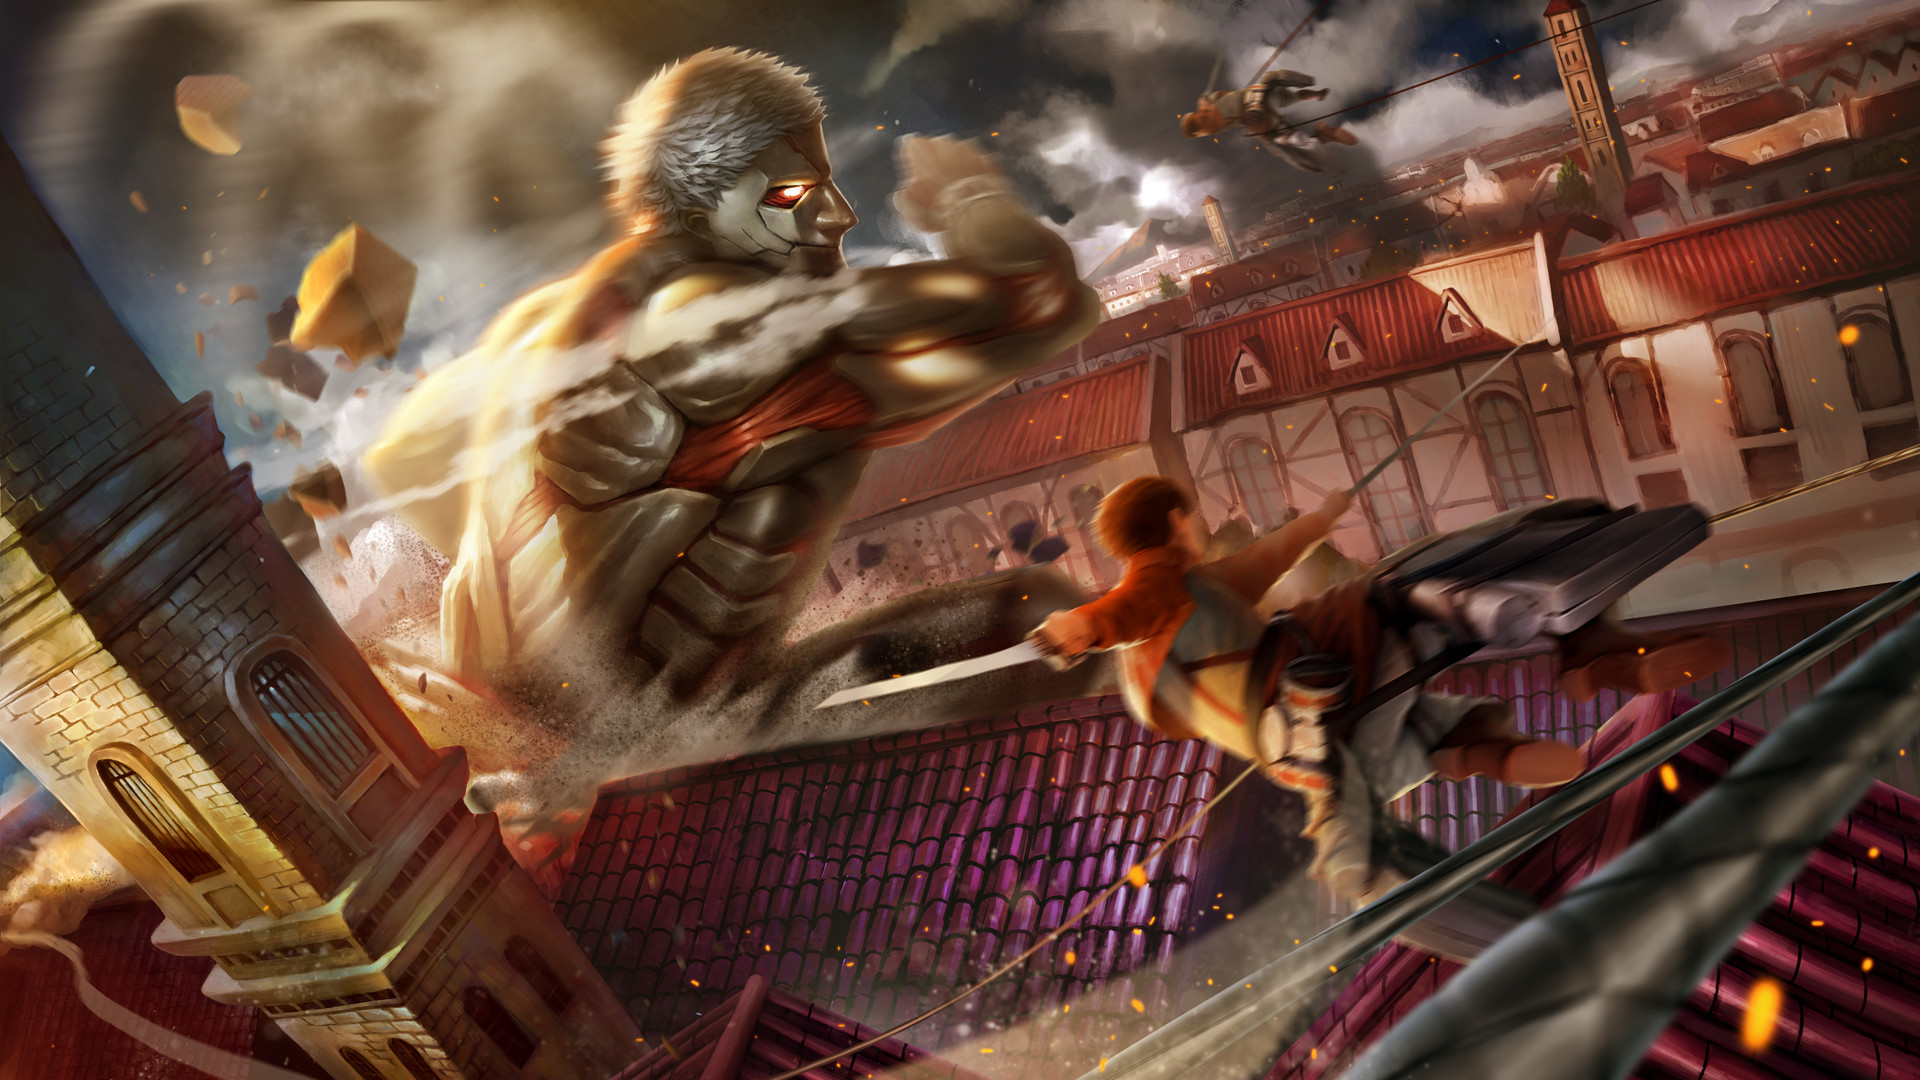 Wallpaper Of Armored Titan Attack On Titan City Attack On Titan 21841 Hd Wallpaper Backgrounds Download